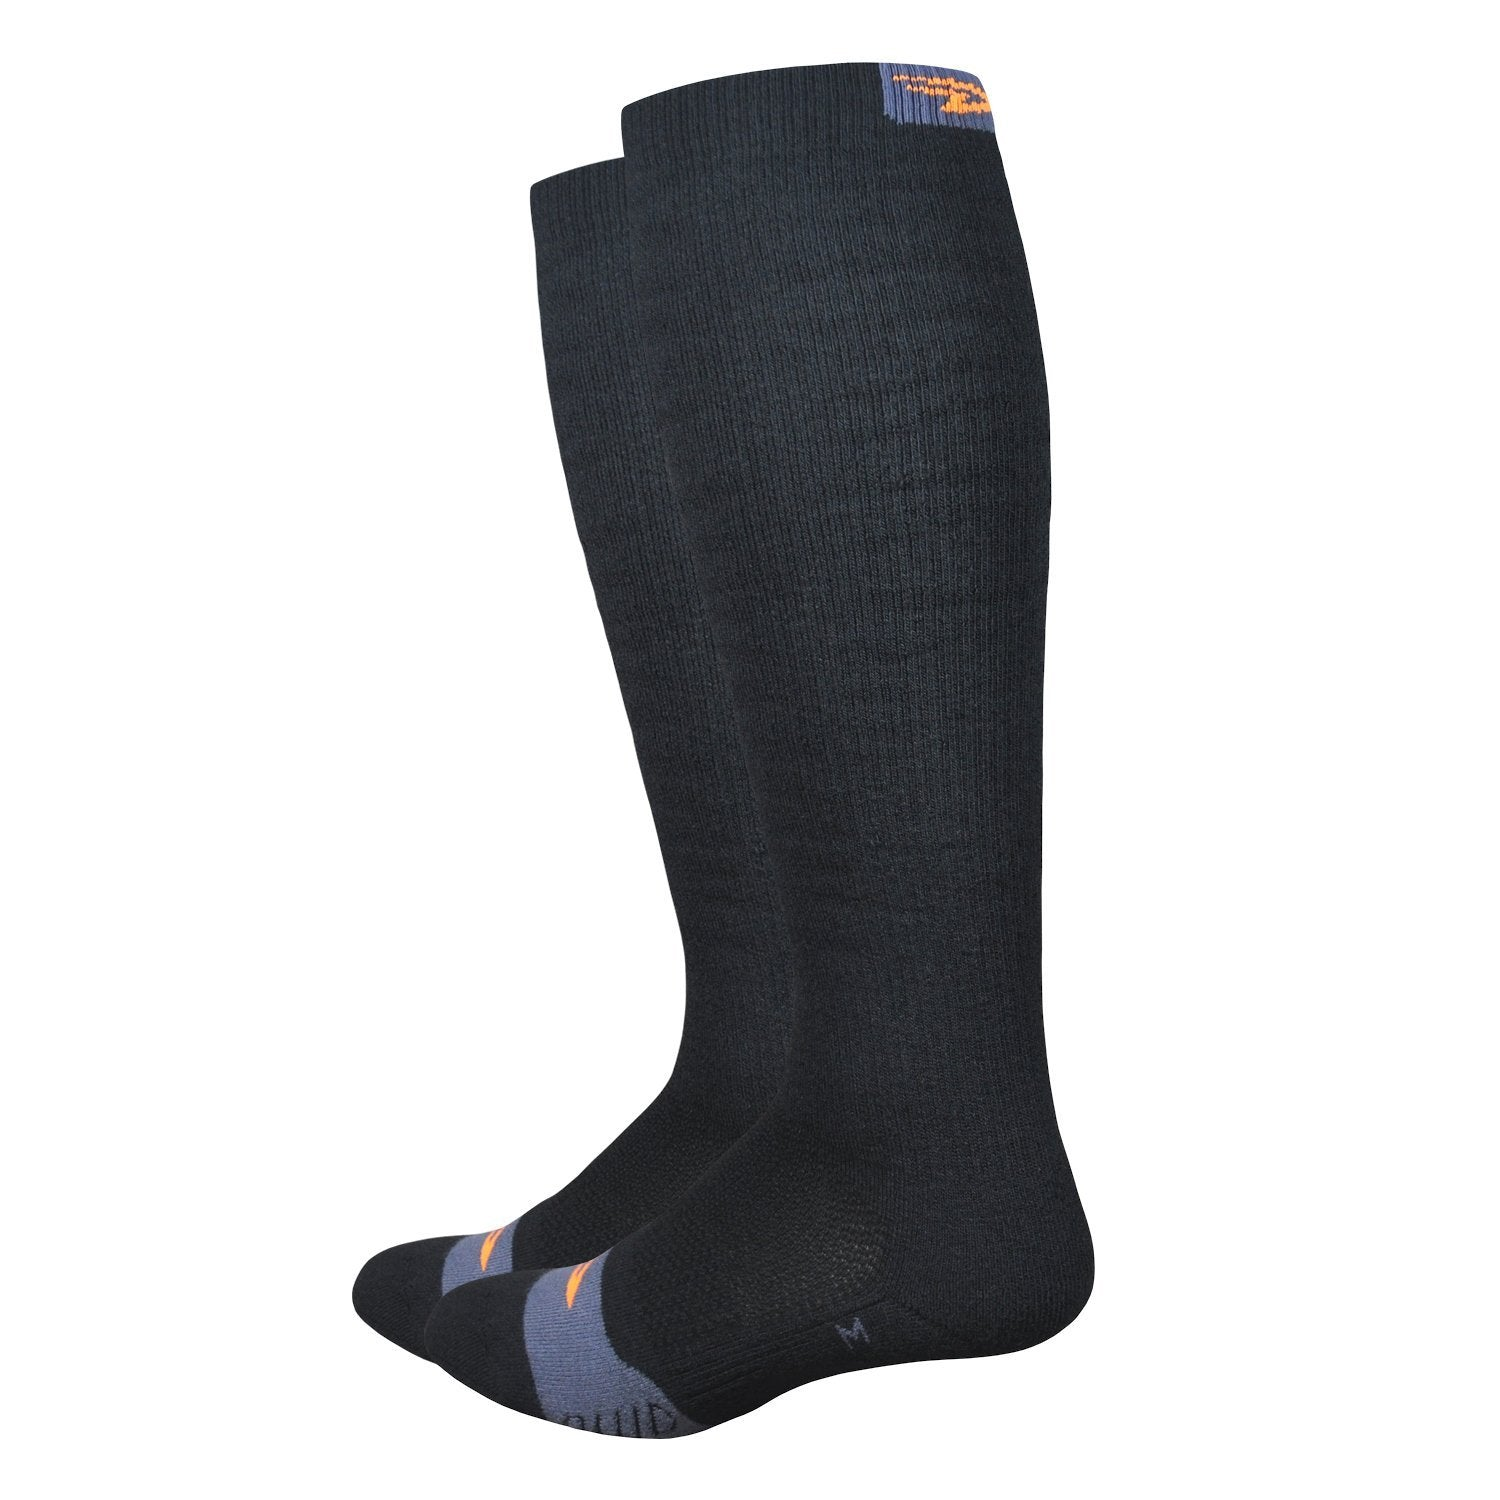 Defeet Cycle Clothing > Socks Defeet Thermeator Knee High Socks